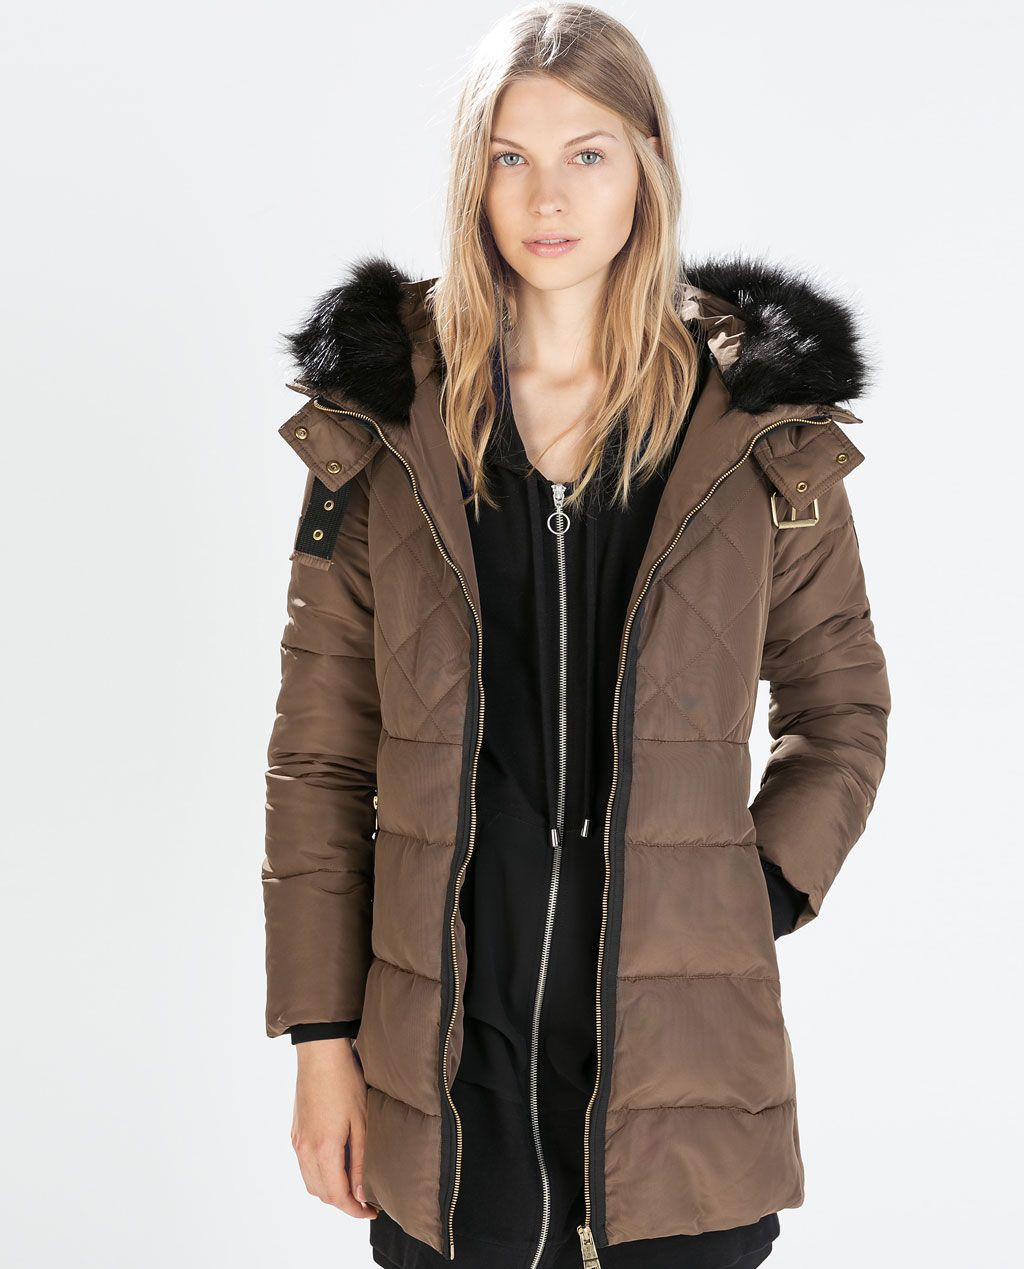 designer fashion biggest discount cheapest price ZARA - FEMME - ANORAK TROIS-QUARTS FANTAISIE | vestes ...